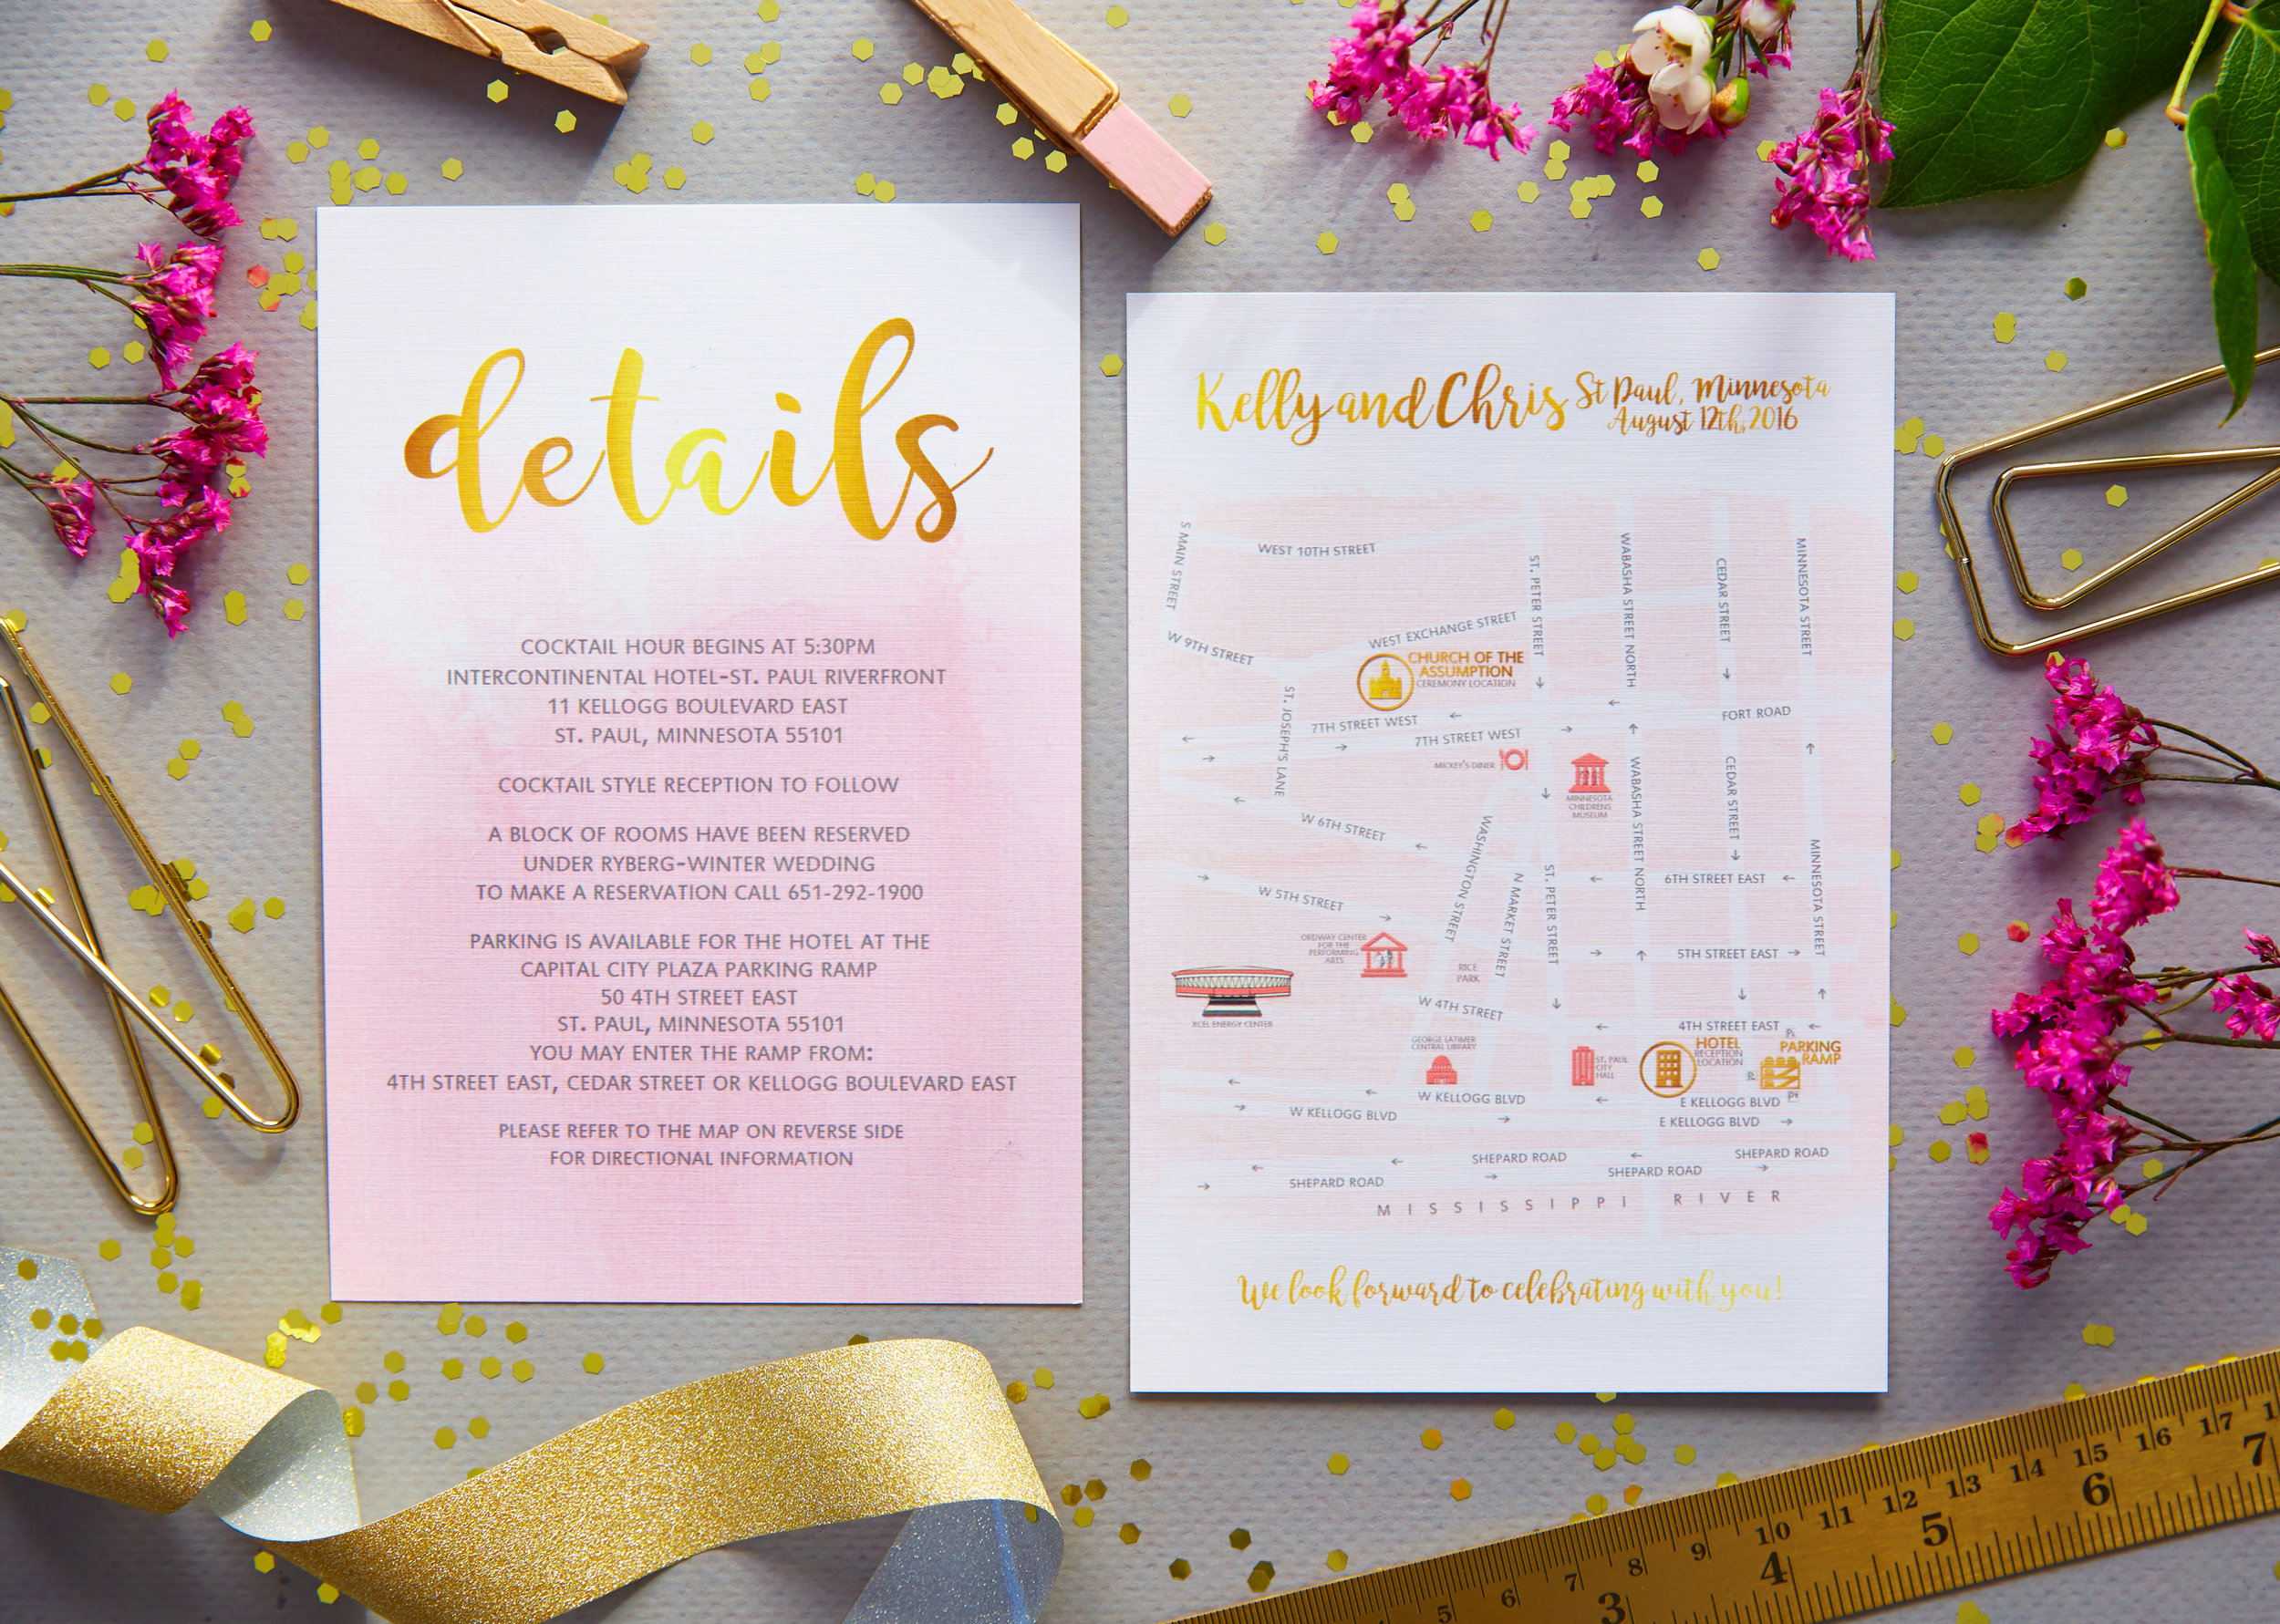 Kelly_watercolor_custom_wedding_invitation_huntwrightdesignco_015.jpg